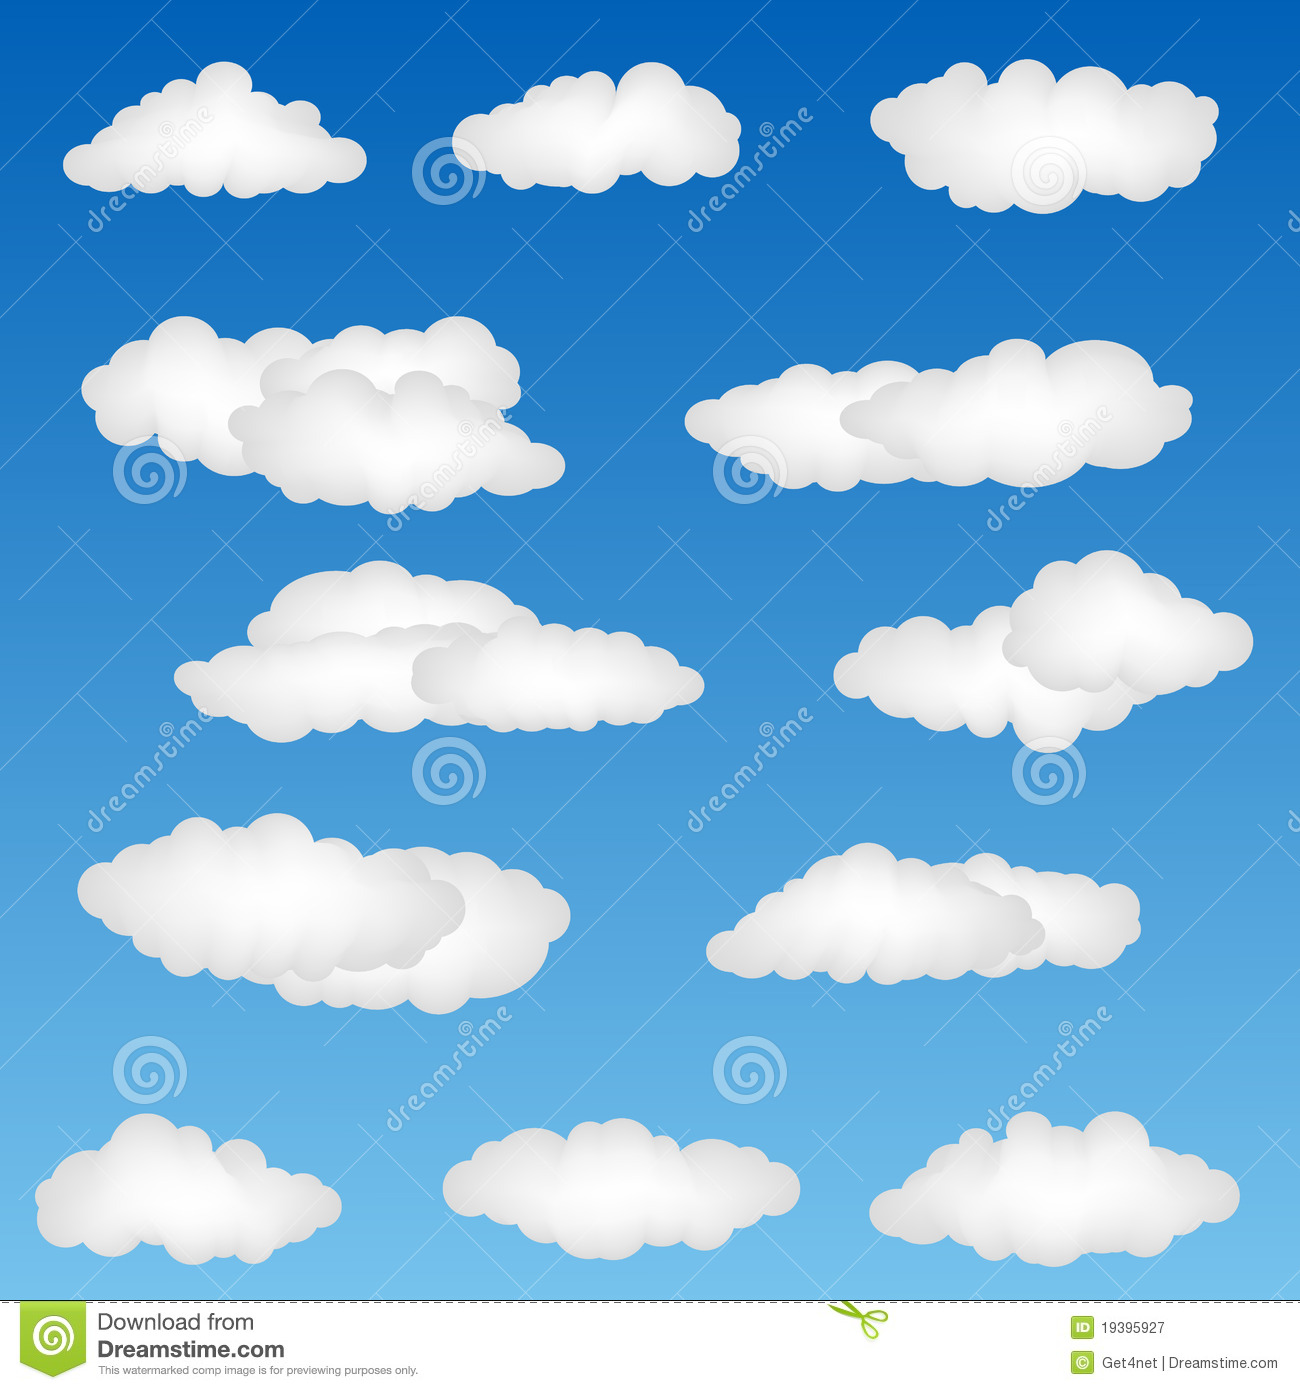 Cloud Shapes Royalty Free Stock Photography - Image: 19395927